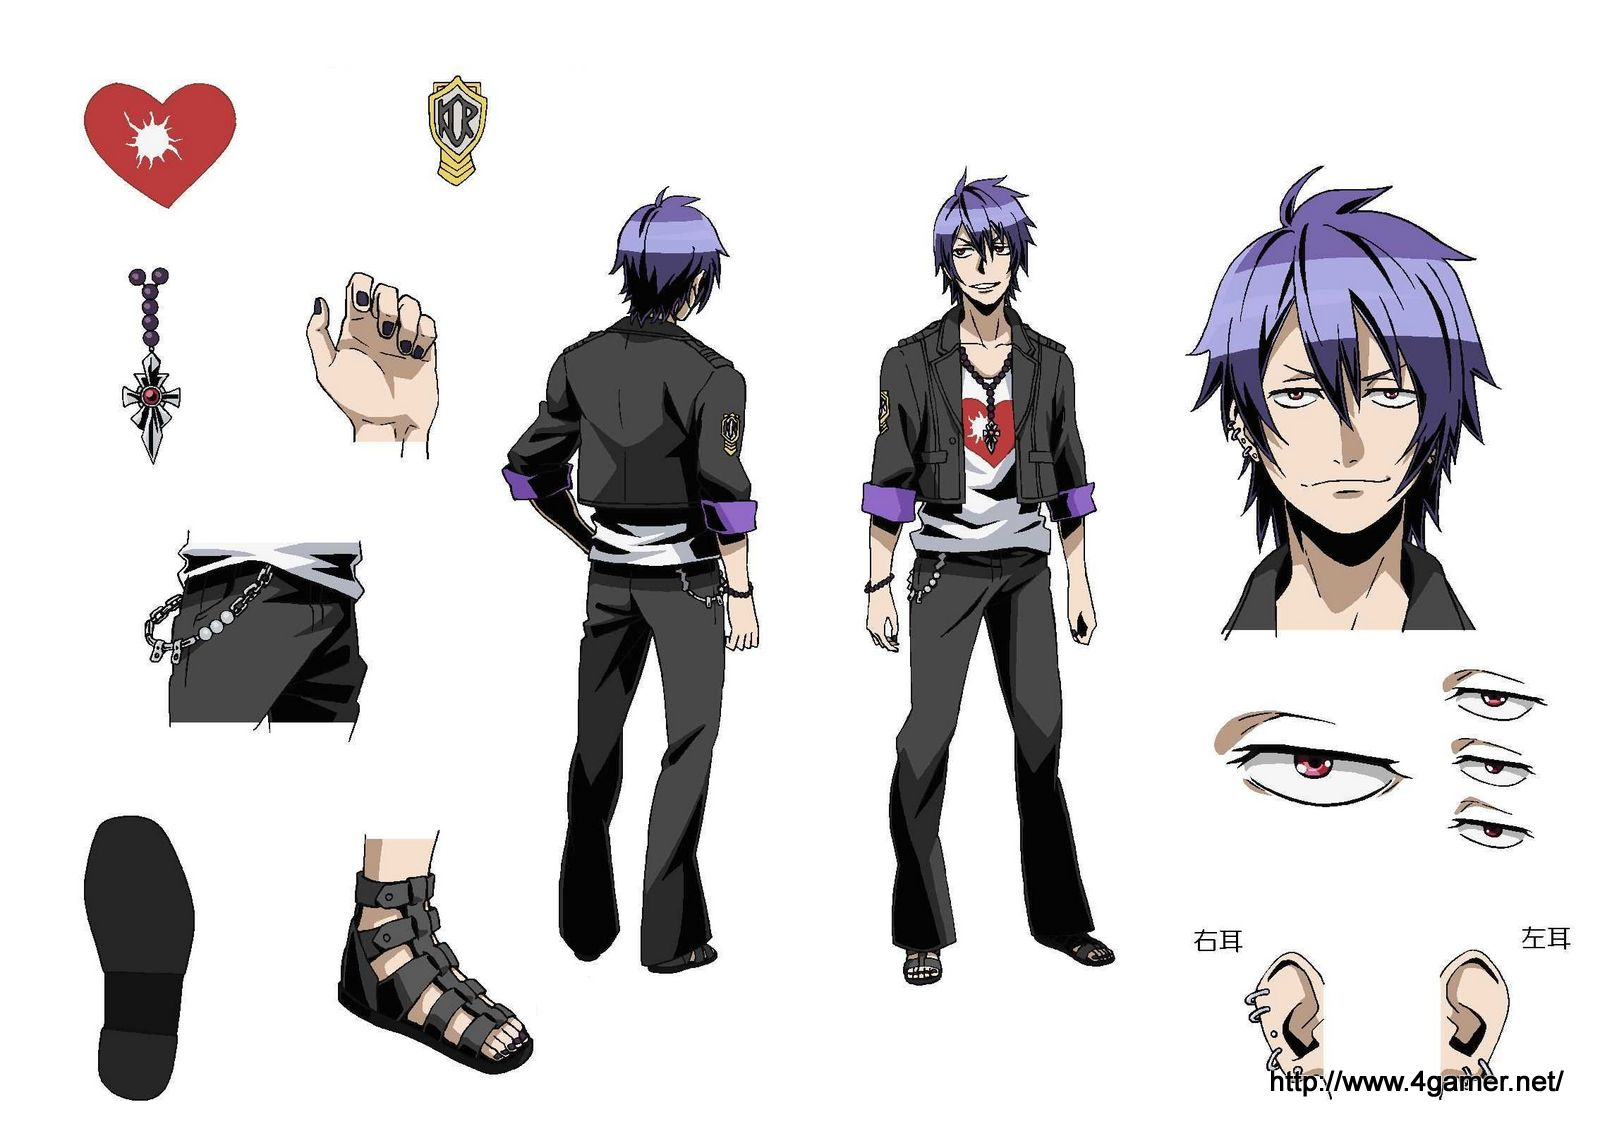 Anime Characters In Ready Player One : Image percival design g divine gate anime wikia